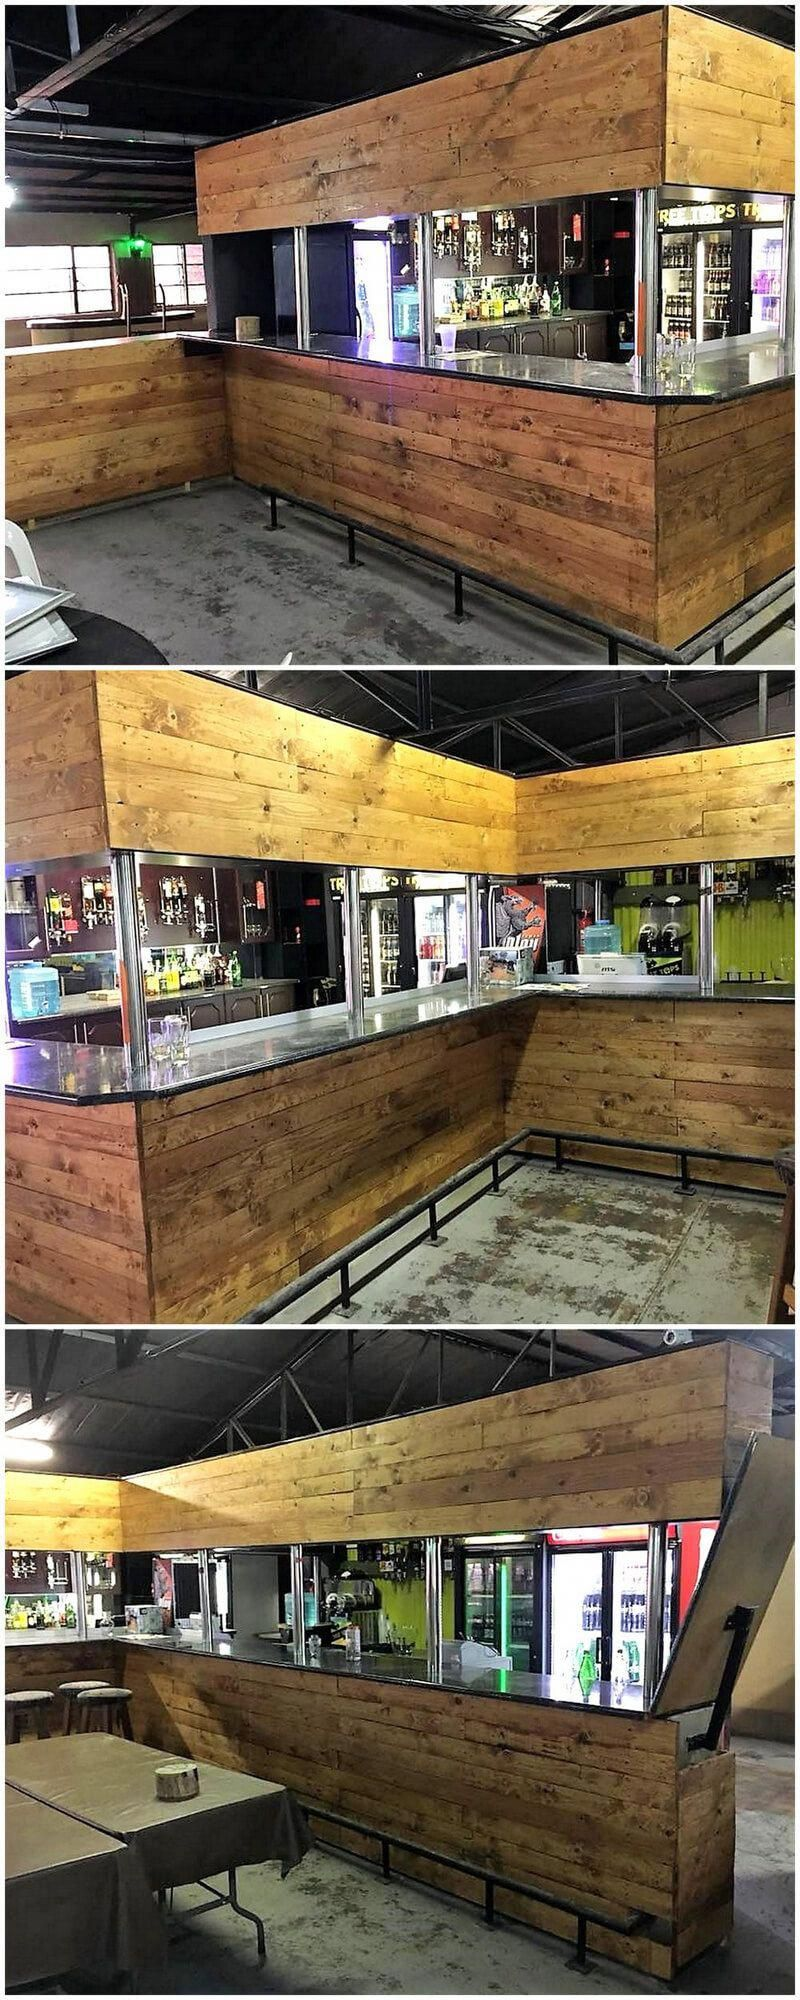 Just click the link to find out more Upcycling Old Pallets #palletfurniture #palletwoodart #oldpalletsforcrafting